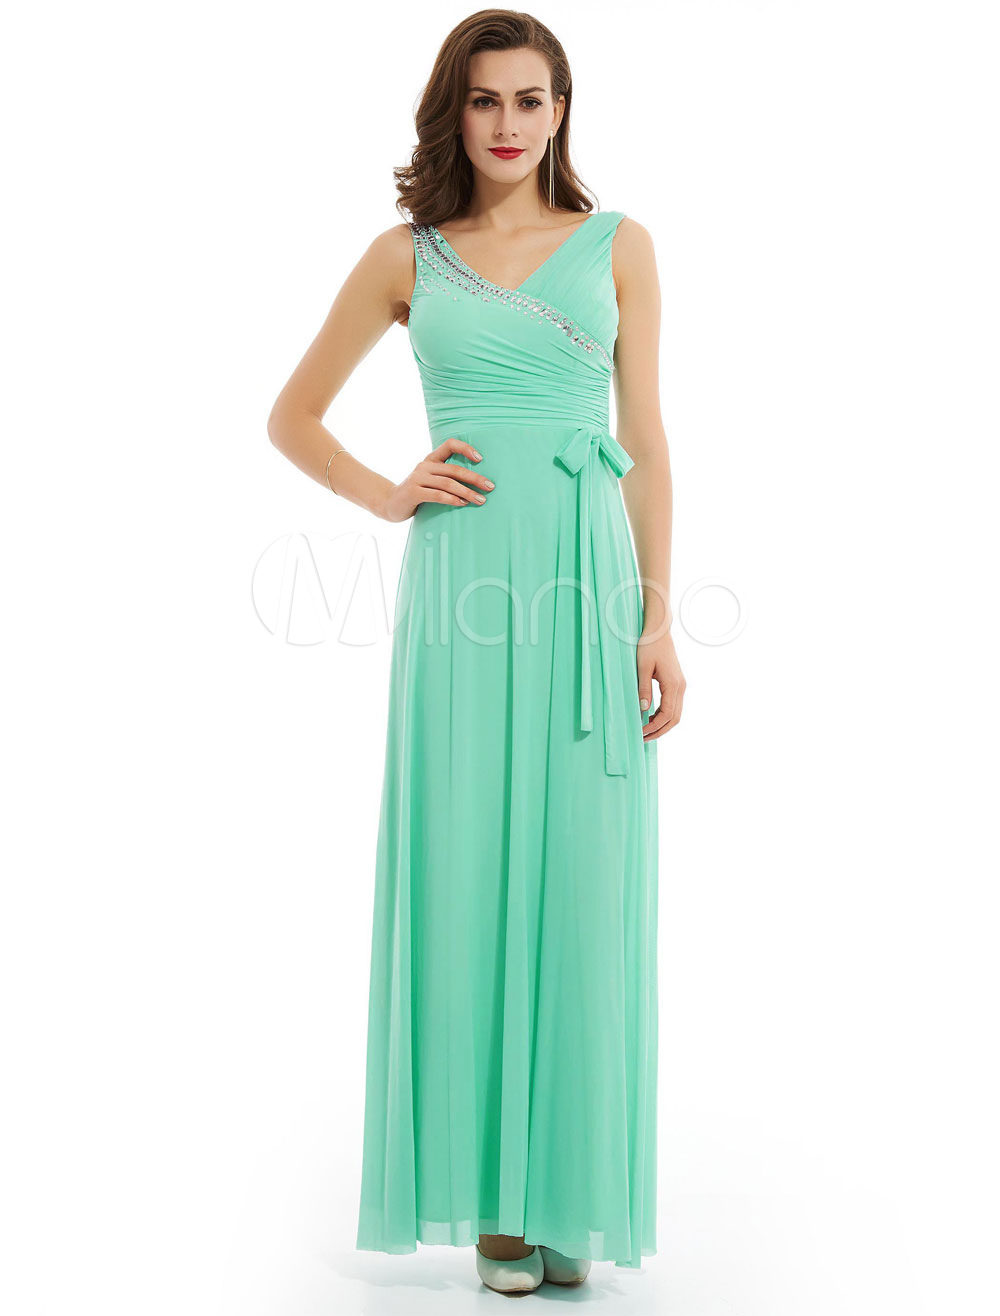 Buy Prom Dresses Long Mint Green V Neck Beading Ribbon Bow Chiffon Floor Length Formal Party Dress for $74.99 in Milanoo store